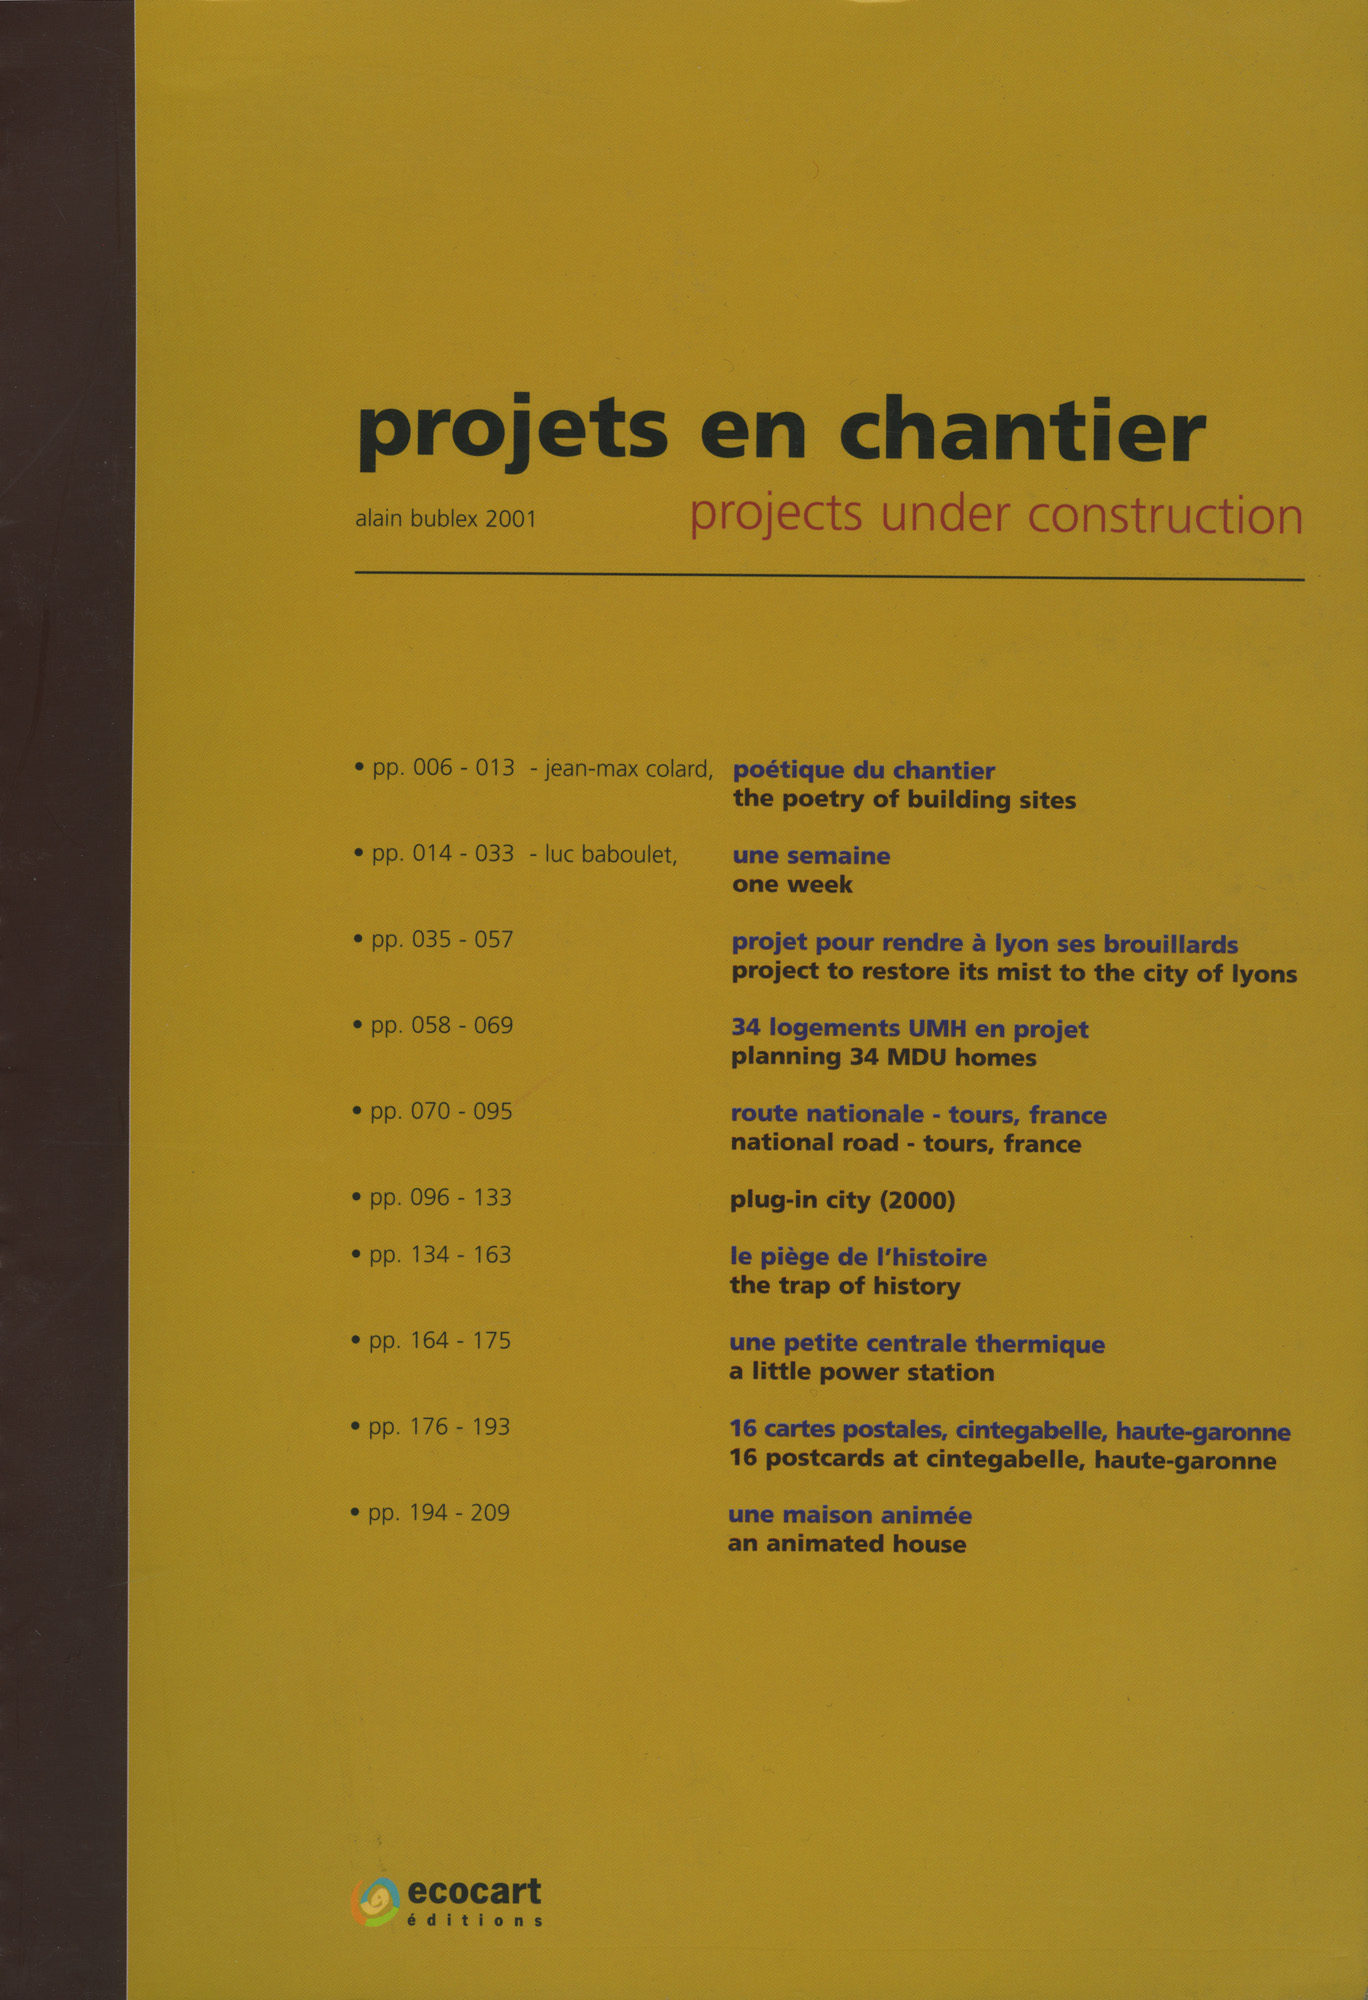 Projets en chantier - Galerie Georges-Philippe & Nathalie Vallois